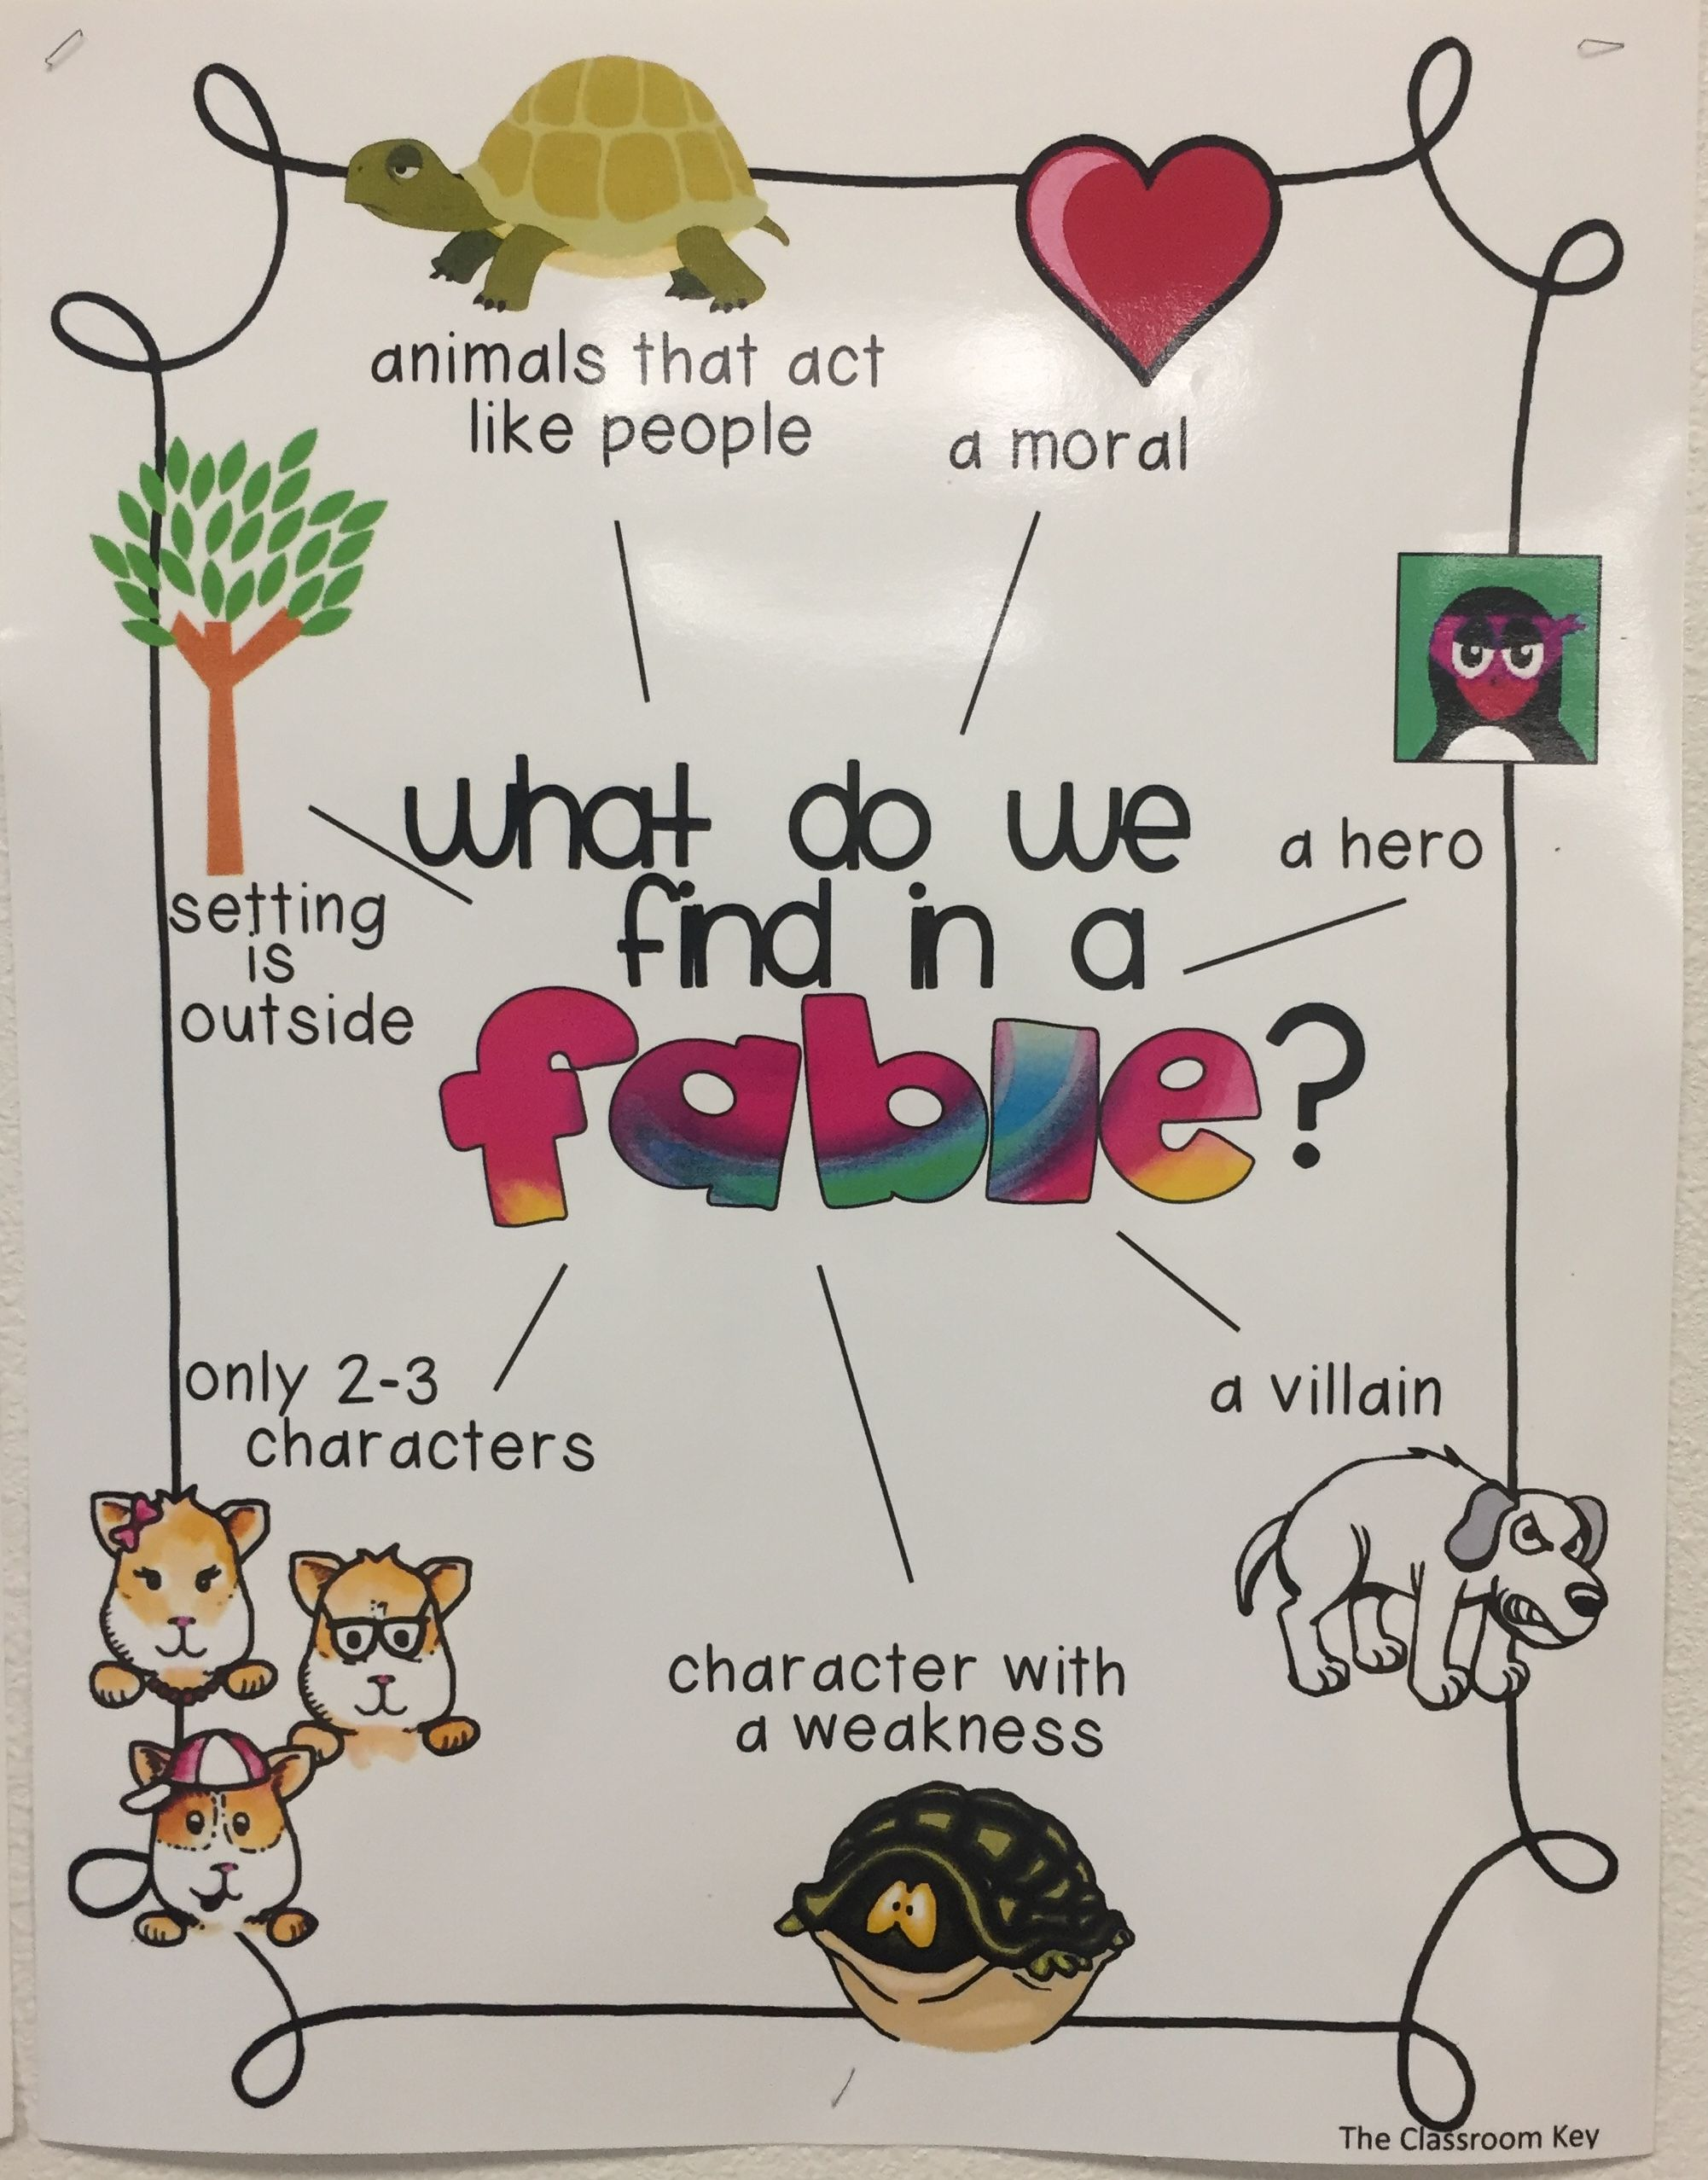 What Do We Find In A Fable This Visual Lists The